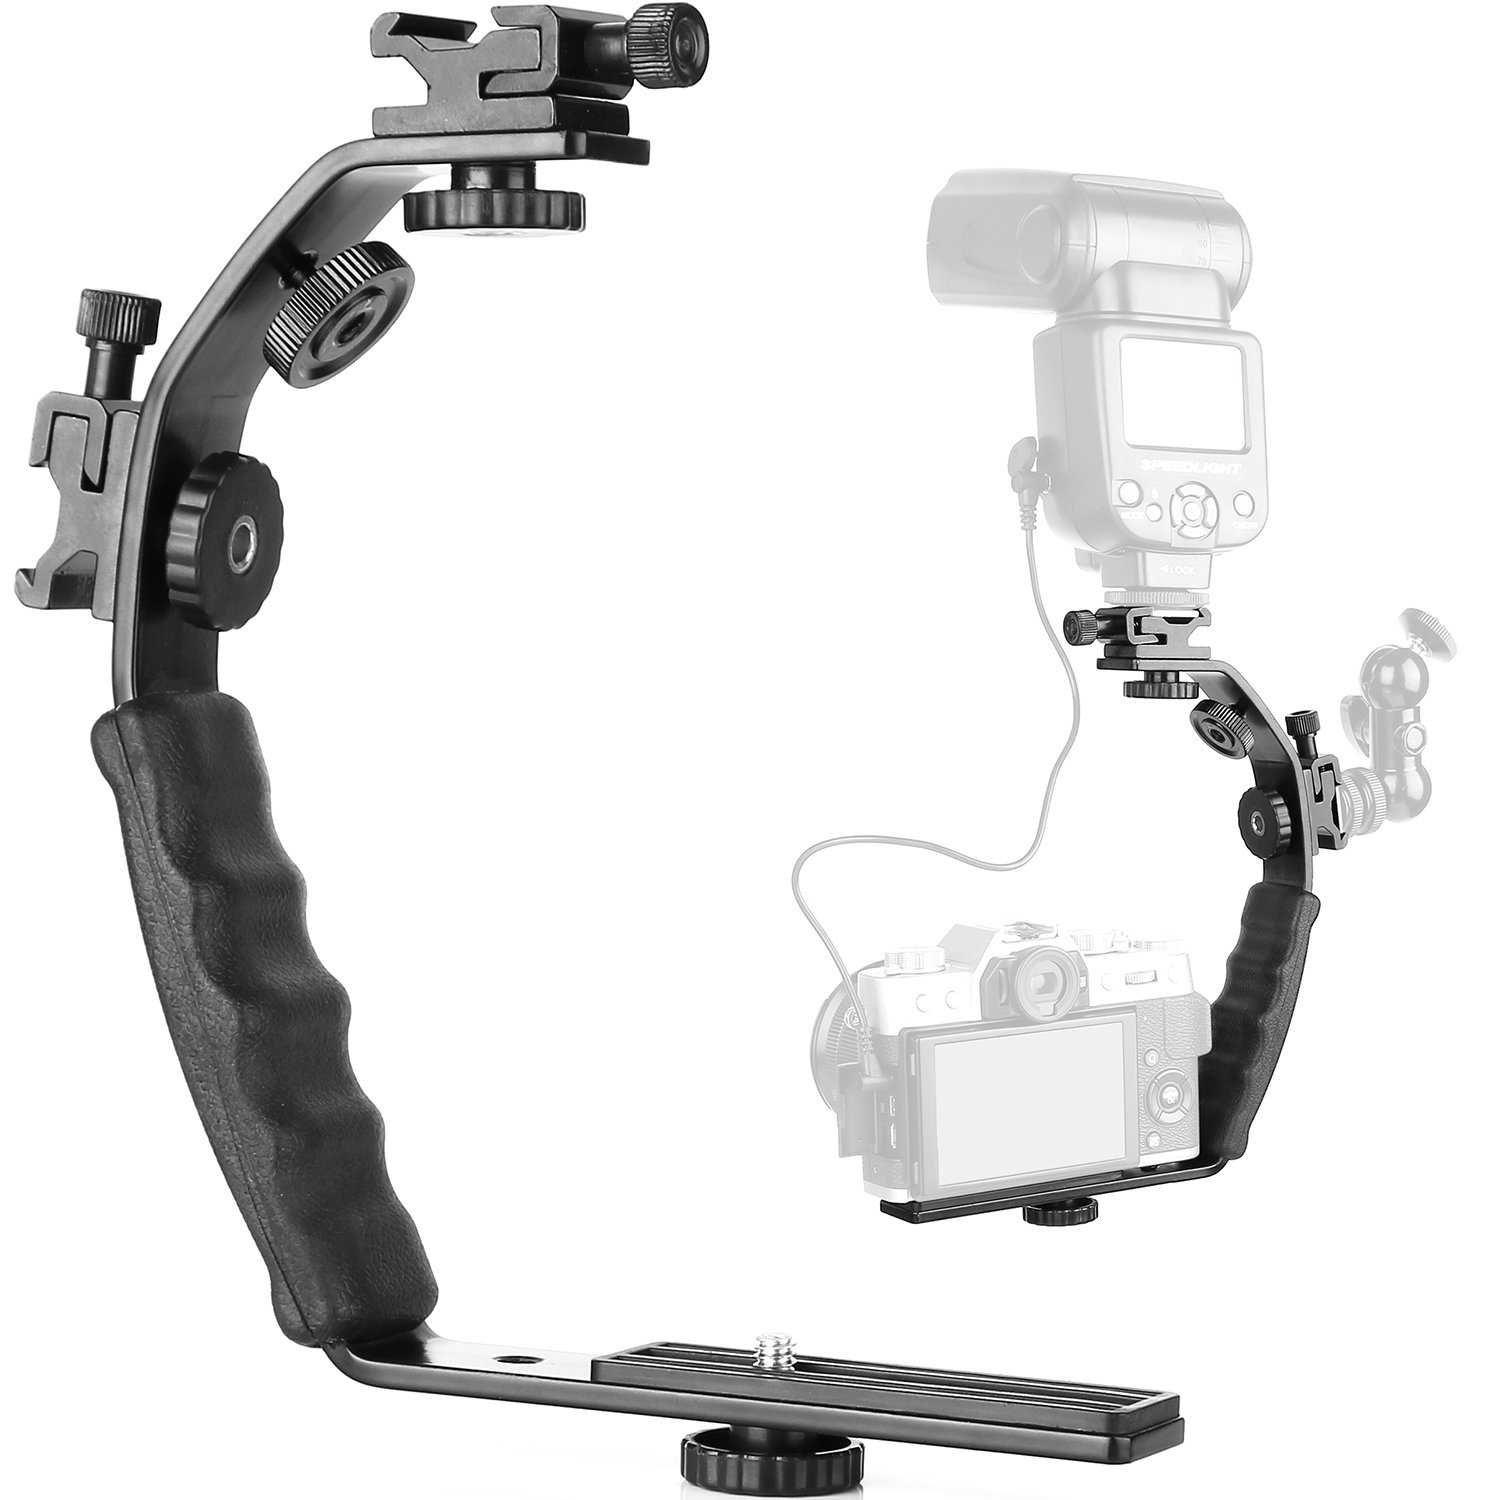 ChromLives Camera L Bracket Mount Video Grip L-Bracket With Dual Flash Cold Shoe Mount 1/4 Tripod Screw, Heavy Duty Padded Hand Grip for Dslr Camera Camcorder (Updated) by ChromLives